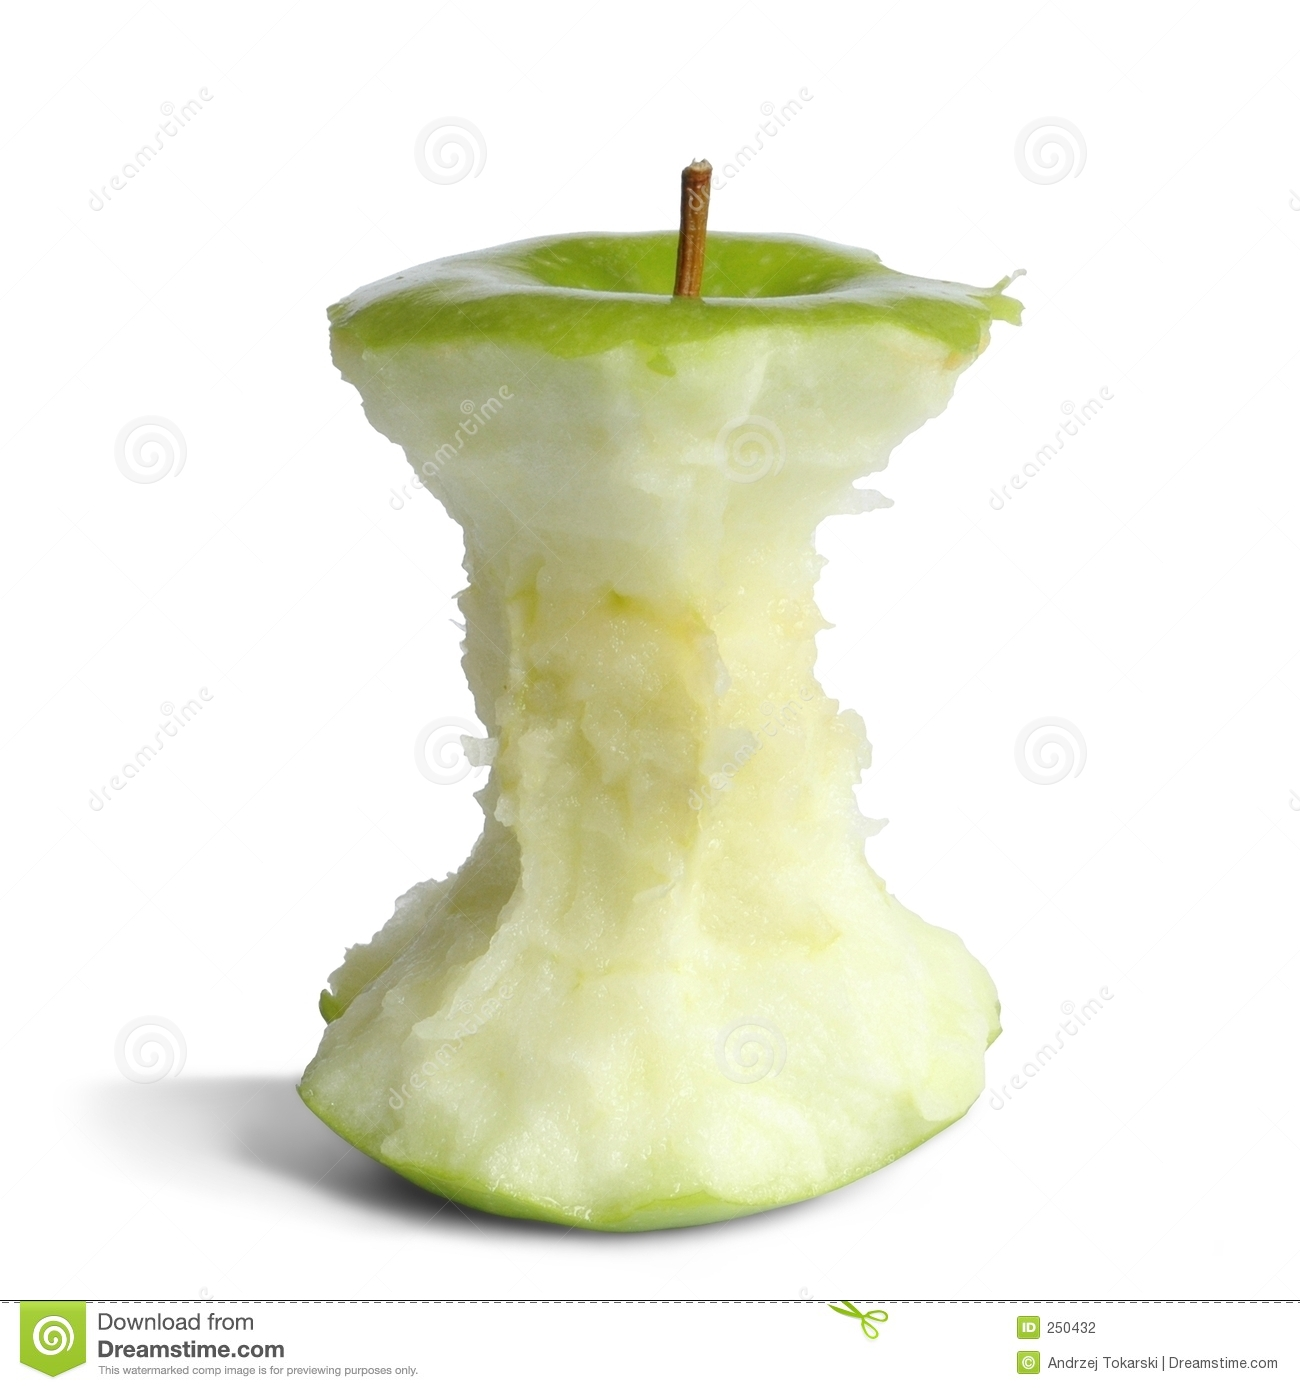 Apple Core Stock Photography - Image: 250432